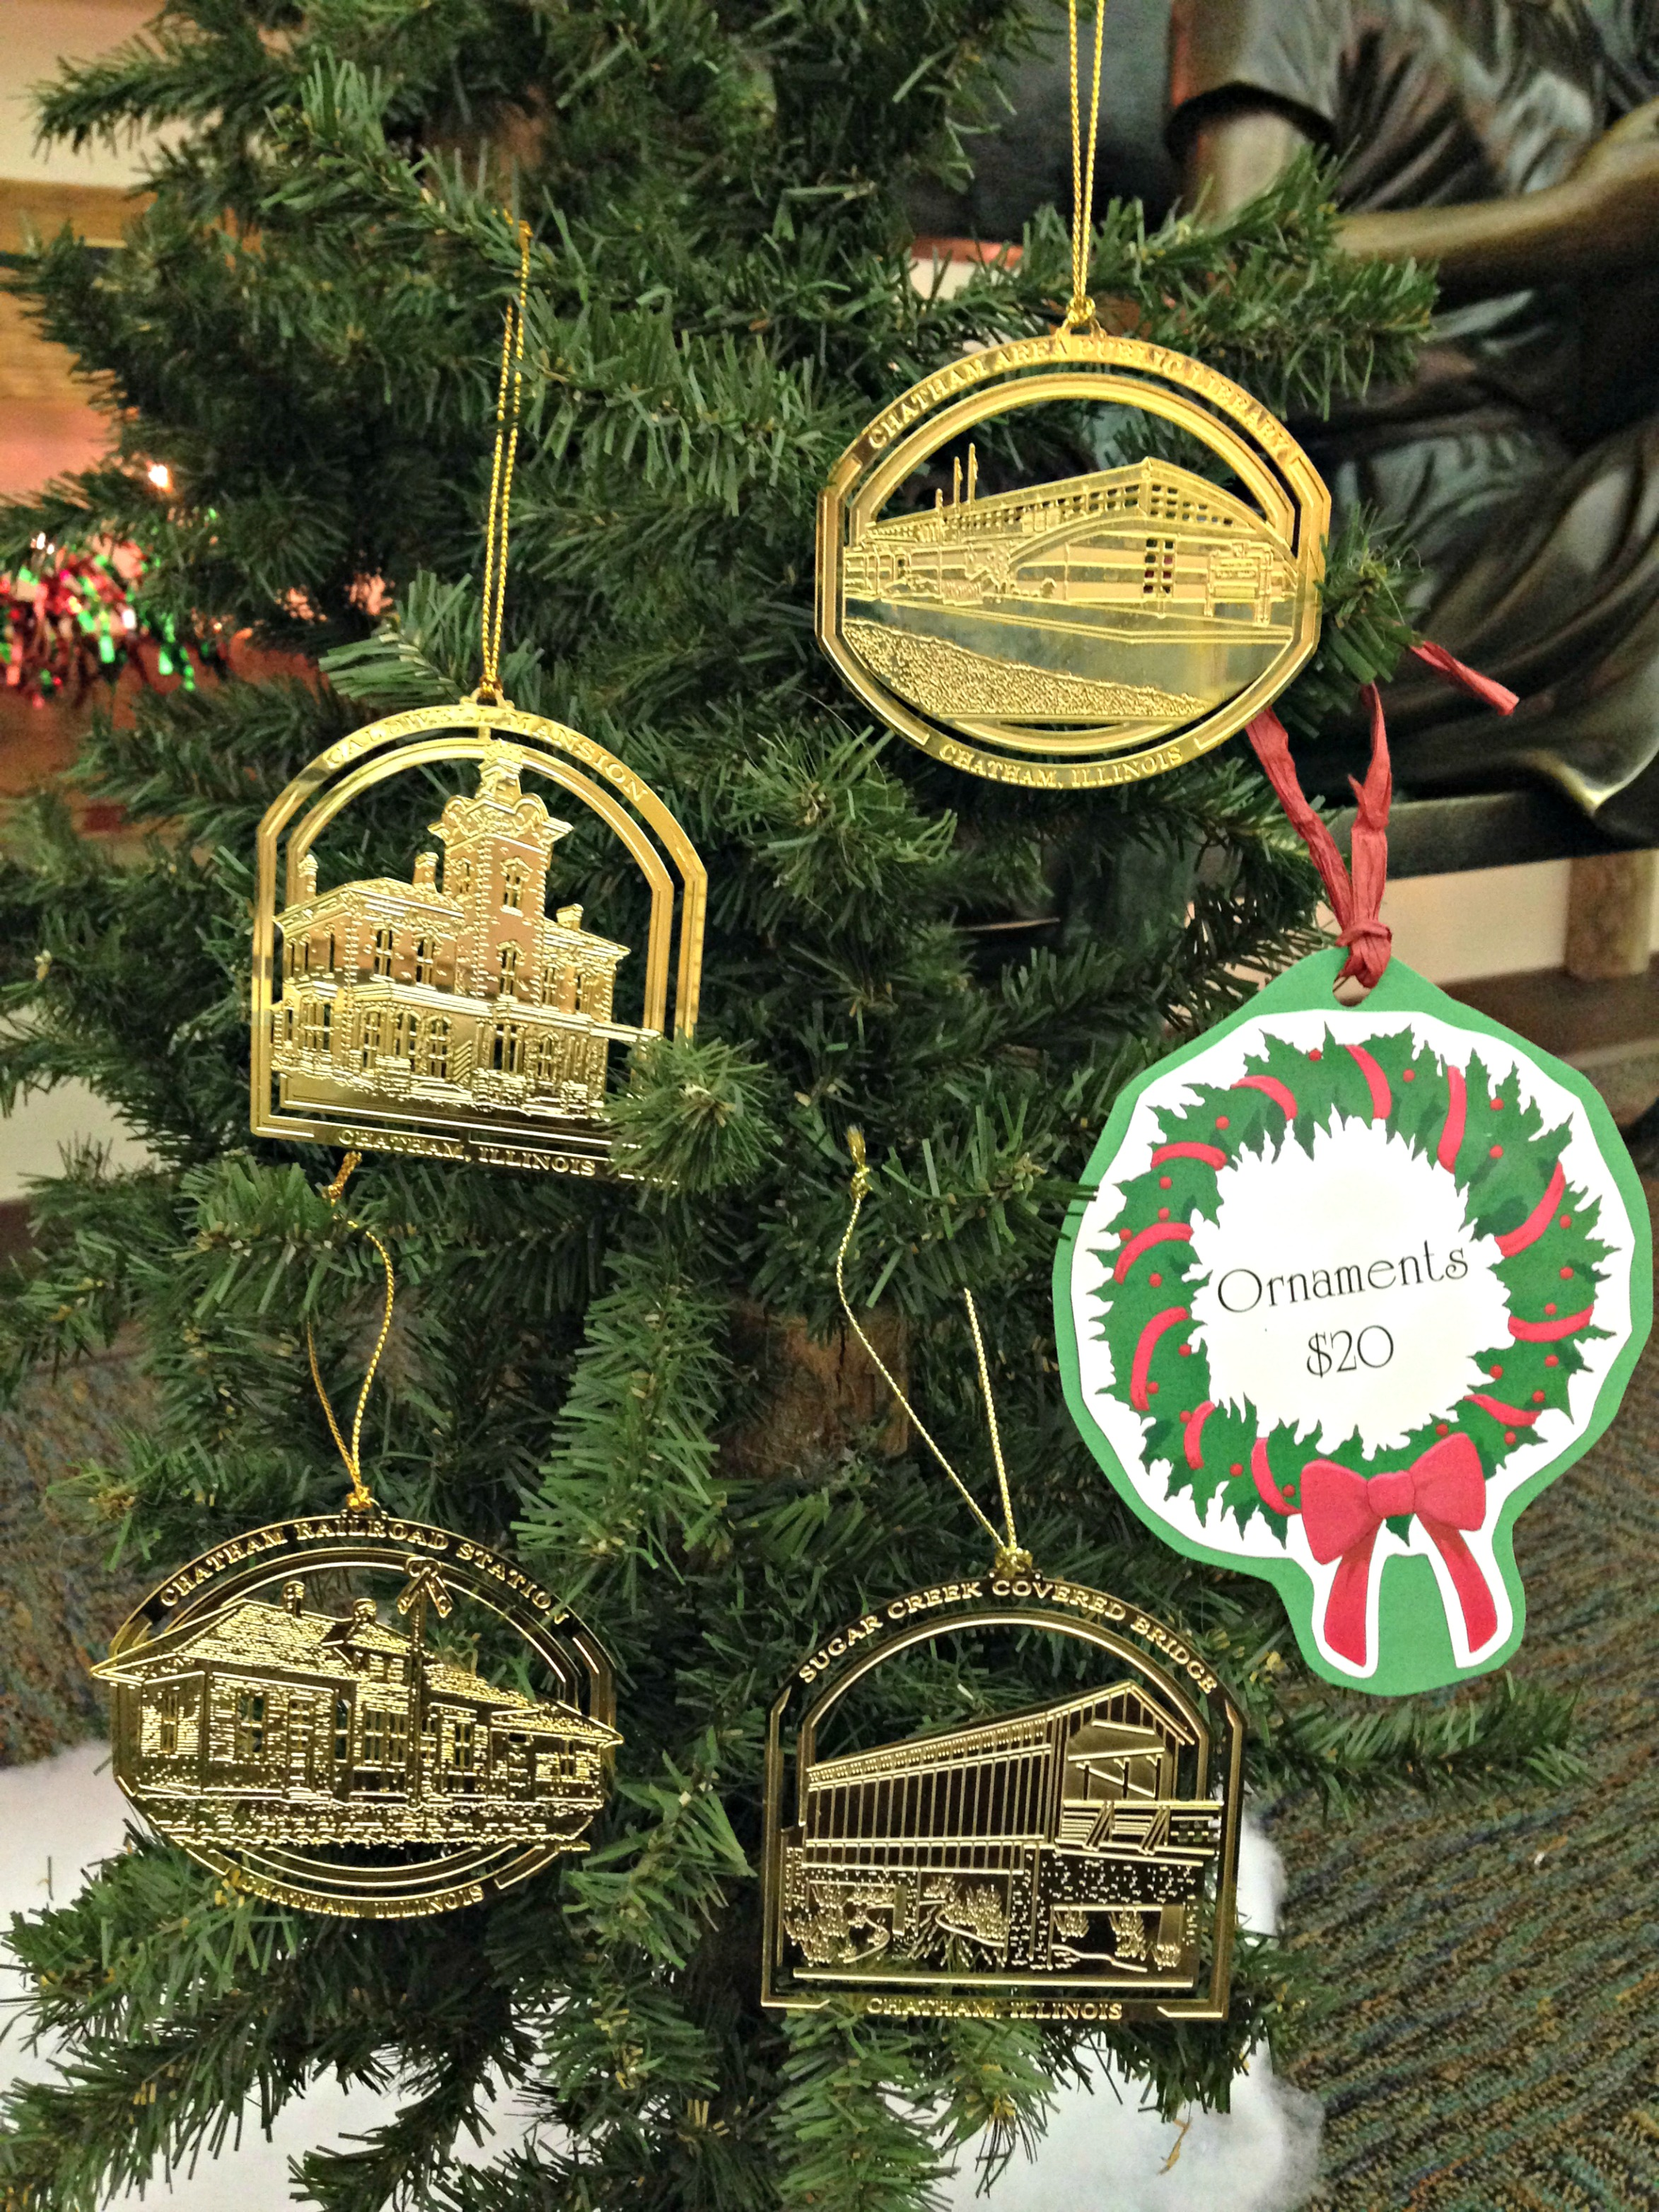 Foundation Ornaments